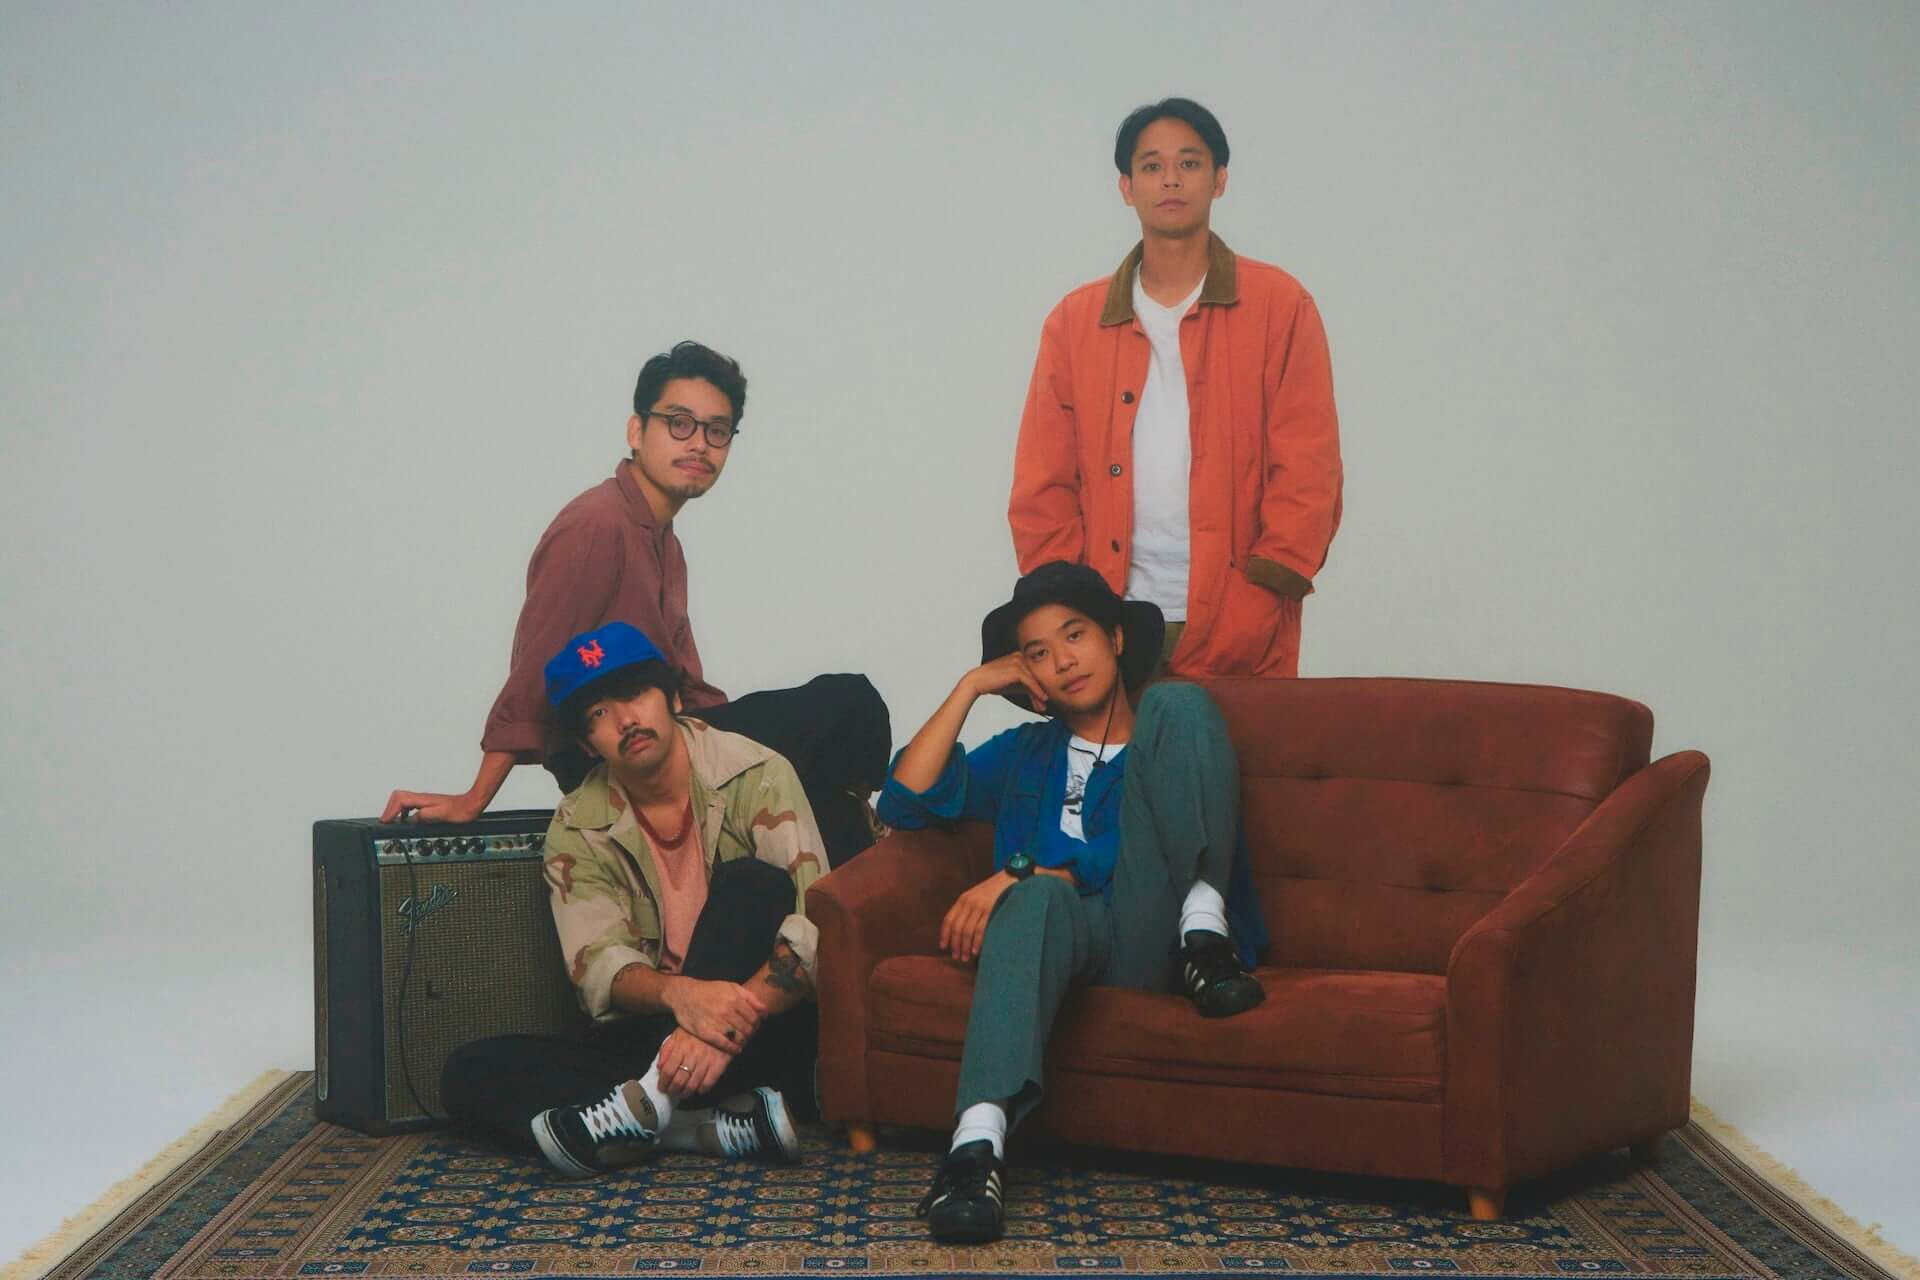 Yogee New Wavesが『to the MOON e.p.』に込めた想いと国境を超えた先にあるもの interview-yogee-ap-1920x1280